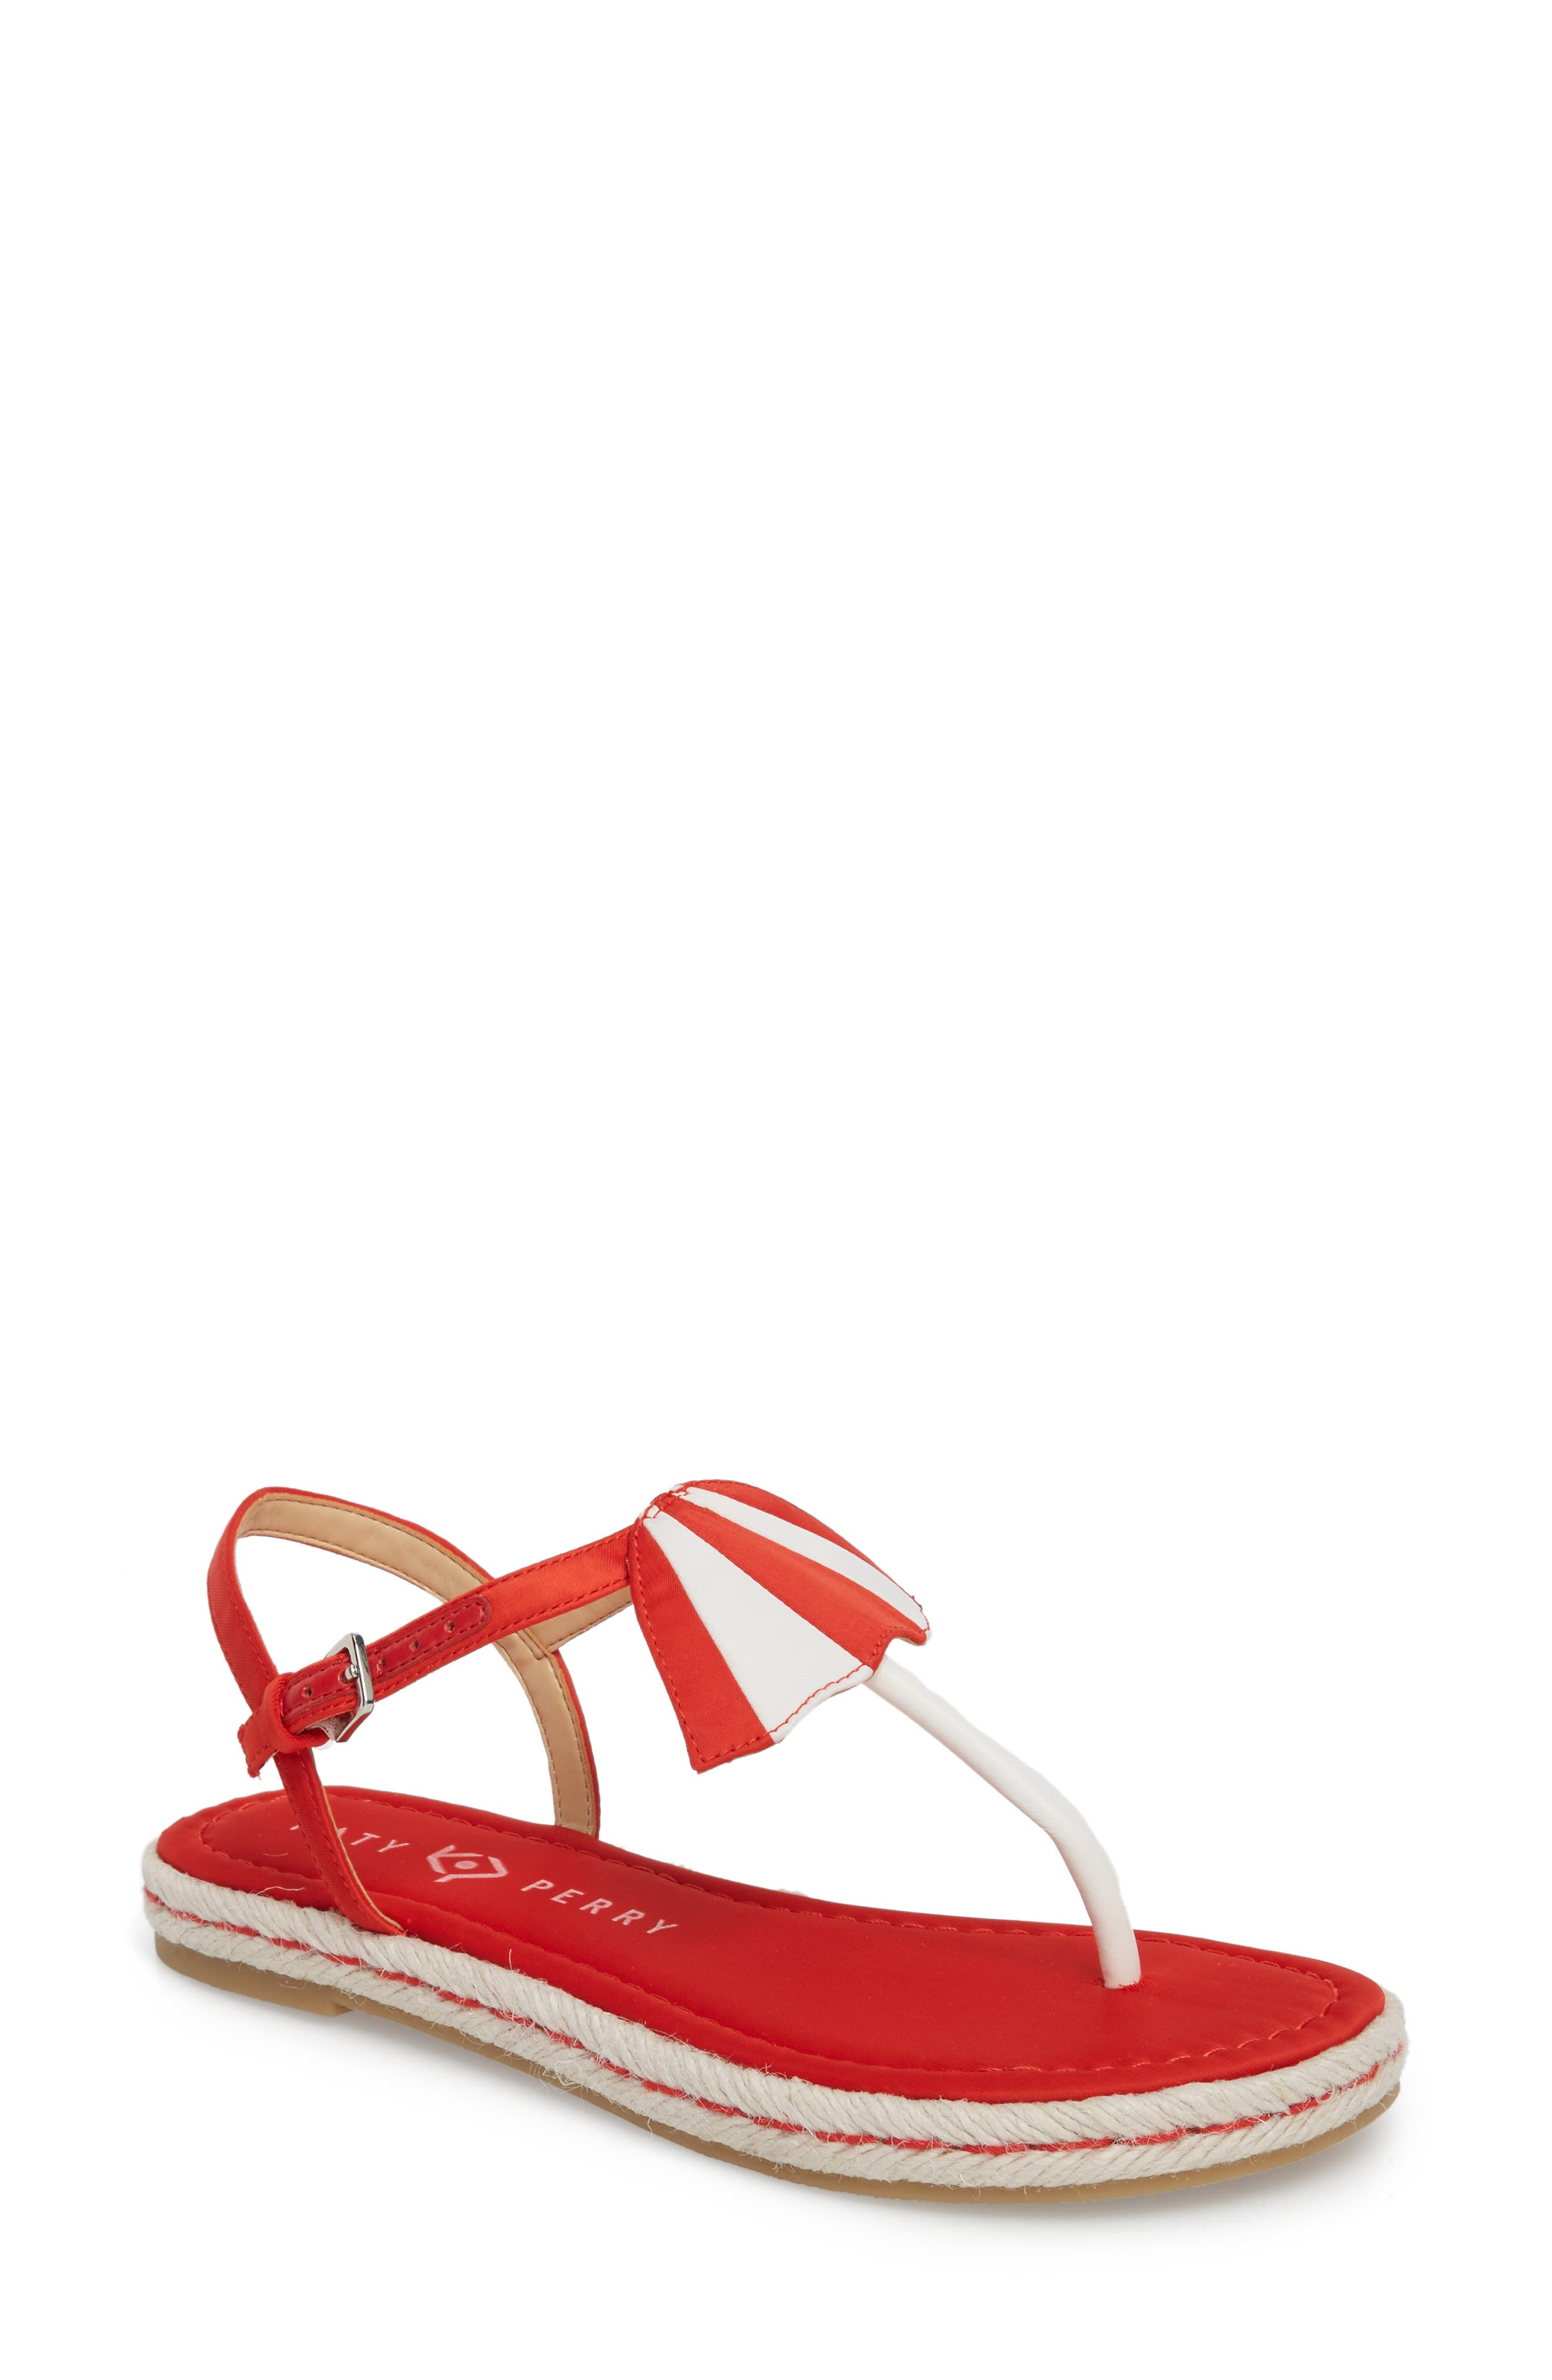 Katy Perry The Shay Espadrille Sandal (Women)